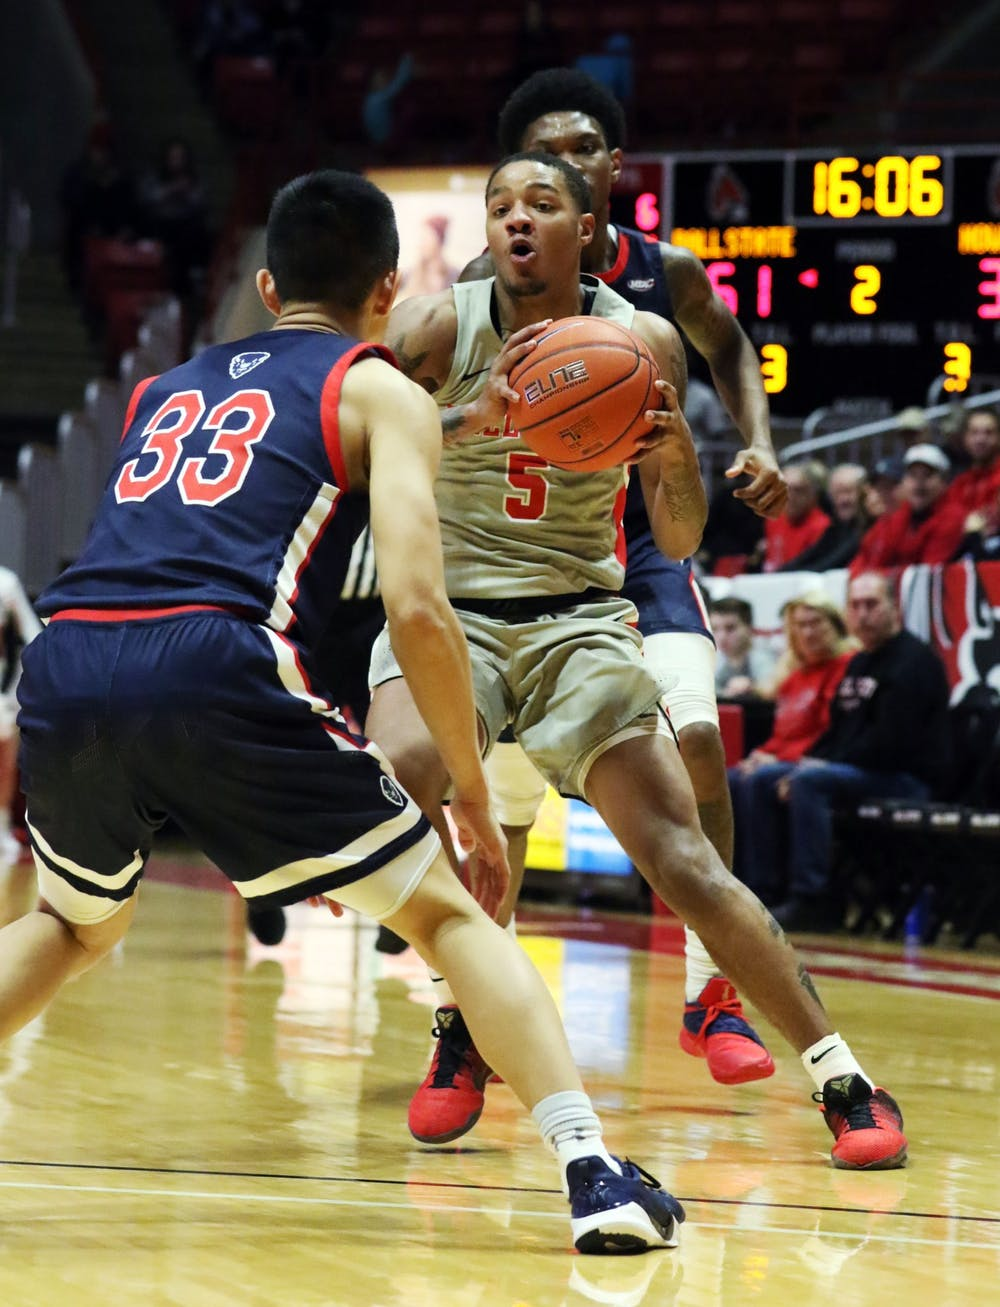 <p>Ball State junior guard Ishmael El-Amin moves the ball in while being guarded by Howard freshman guard Ian Lee during the Cardinals' game against the Bison Saturday, Nov. 23, 2019, at John E. Worthen Arena. Ball State won 100-69. <strong>Paige Grider, DN</strong></p>